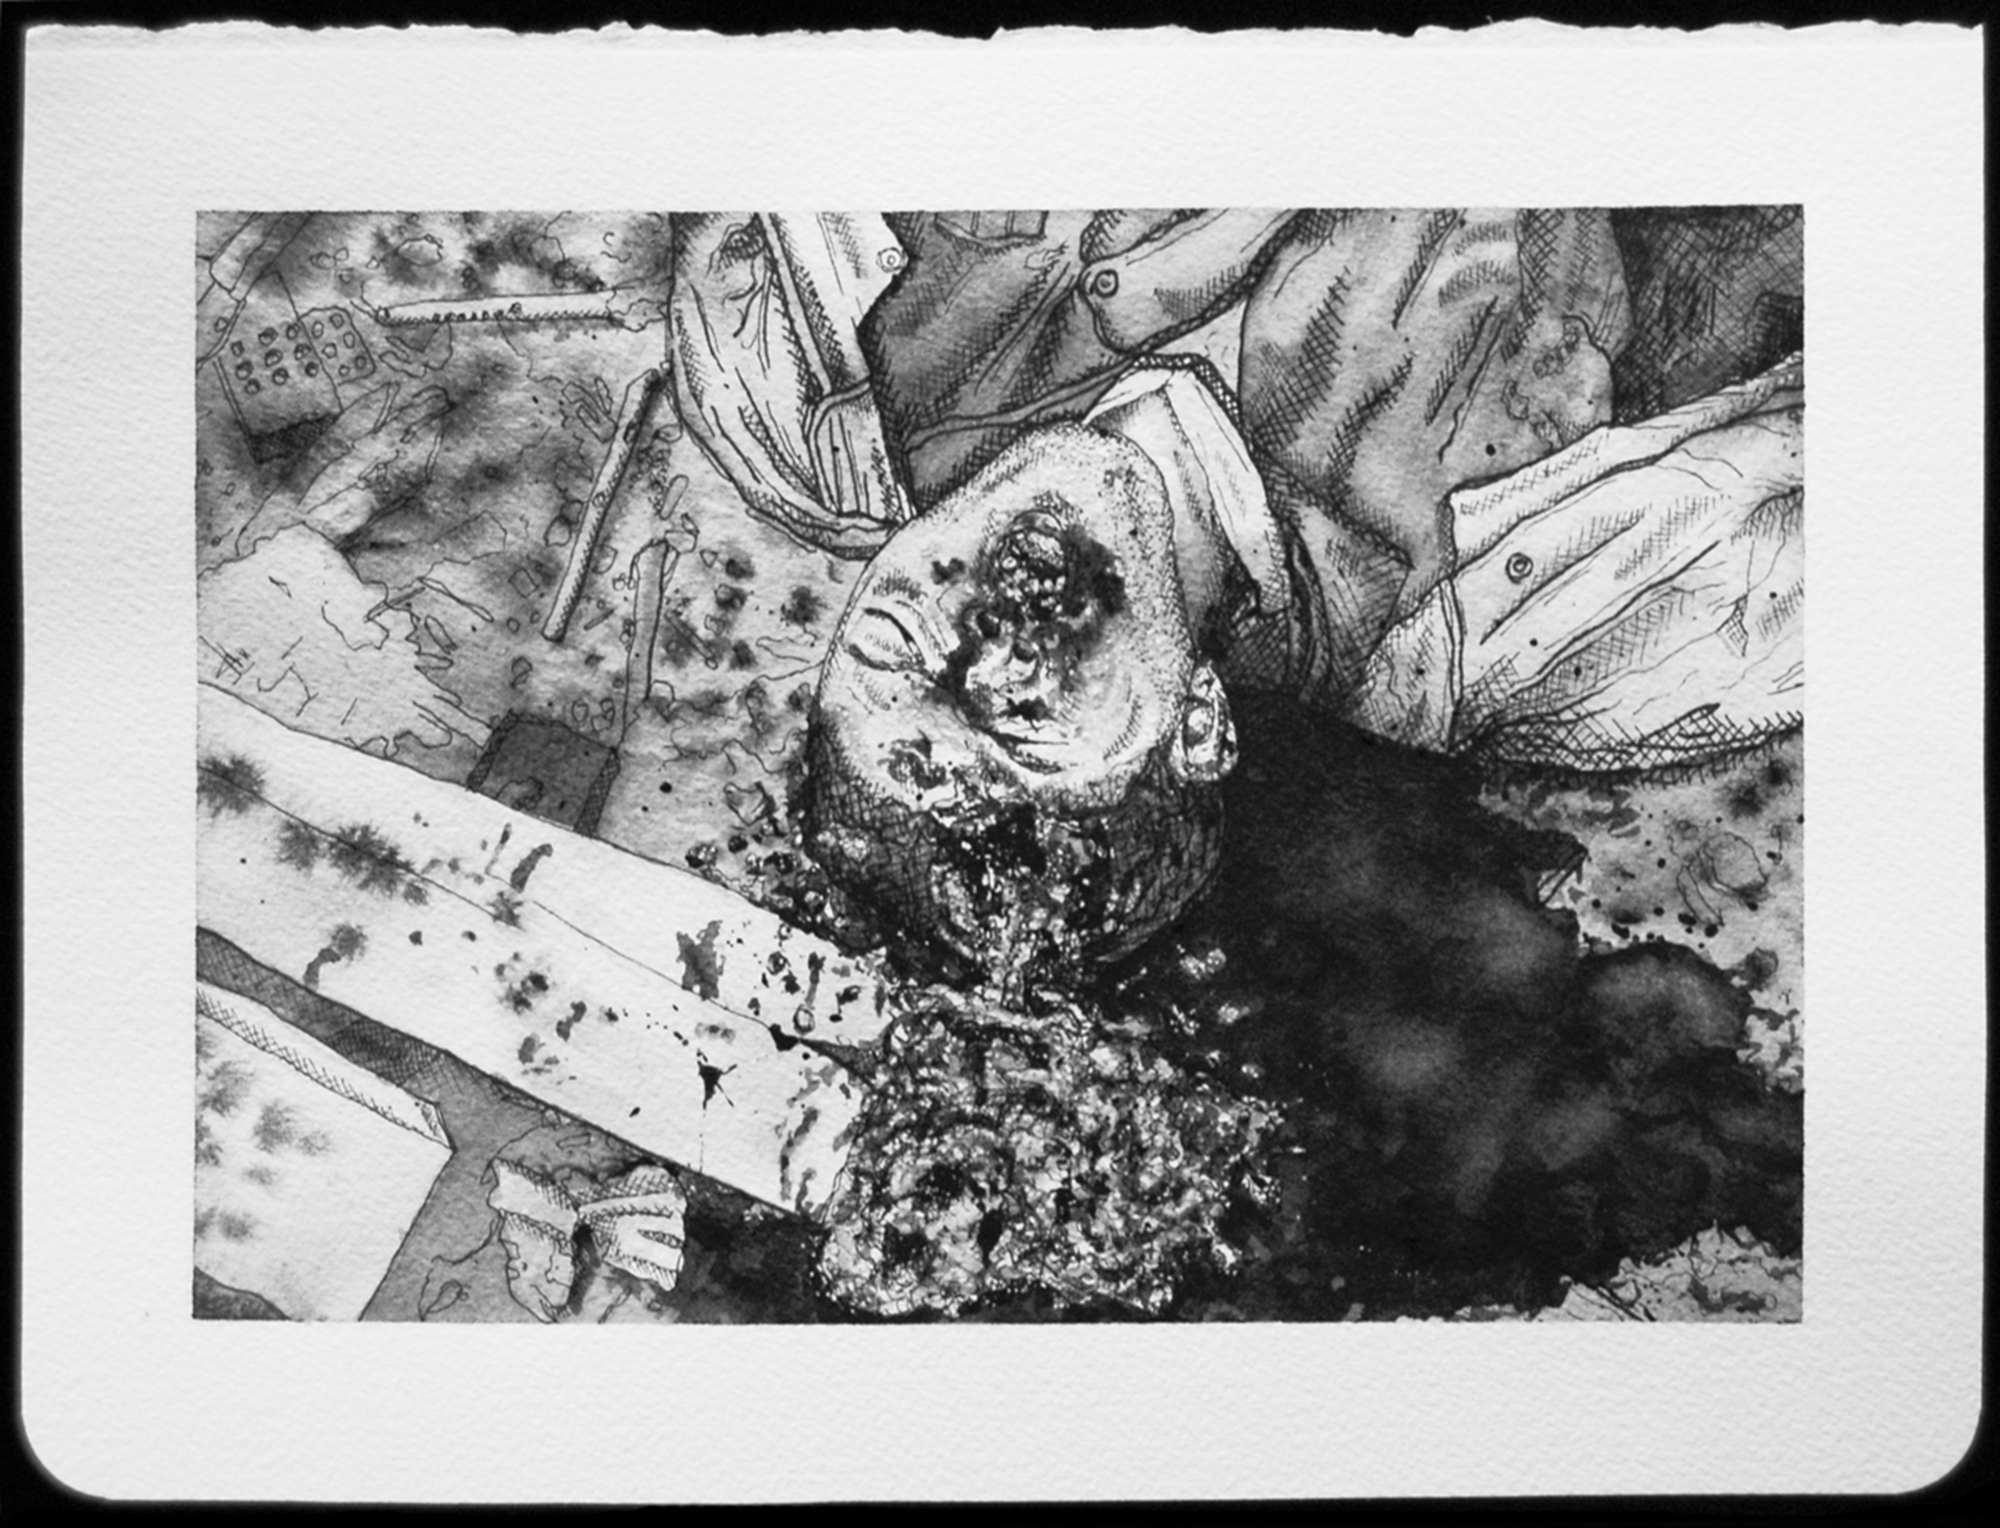 DEATH_083.jpg,2010  |  8.25 x 11 inches  |  archival ink and gouache on paper